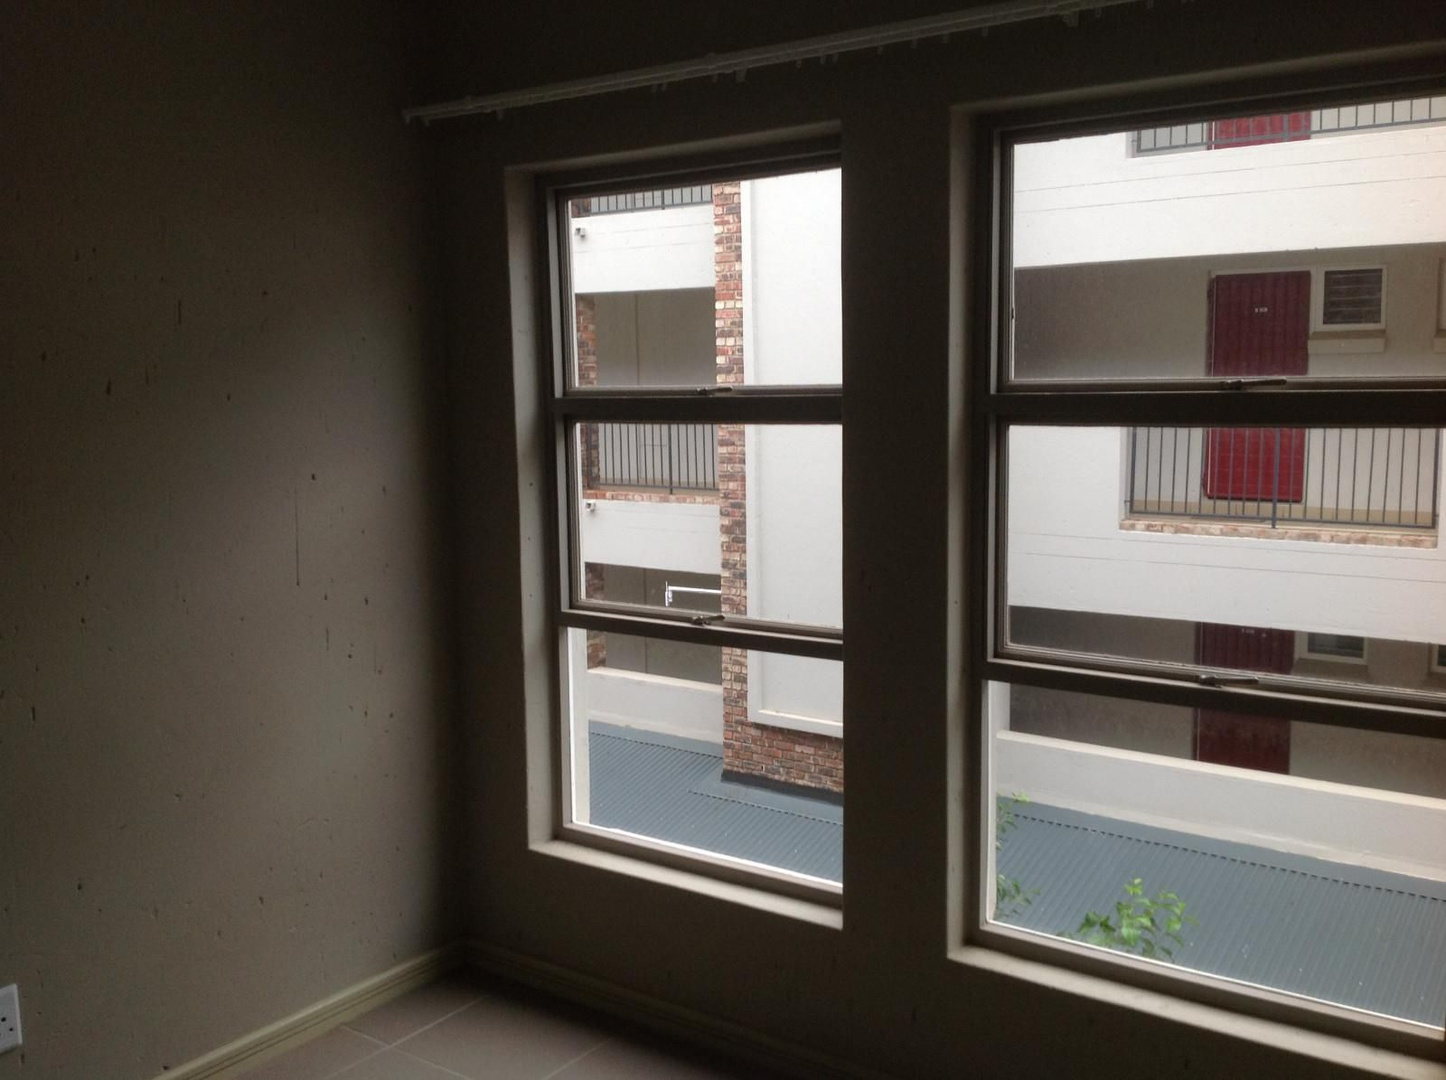 Apartment in Bult - image (40).jfif